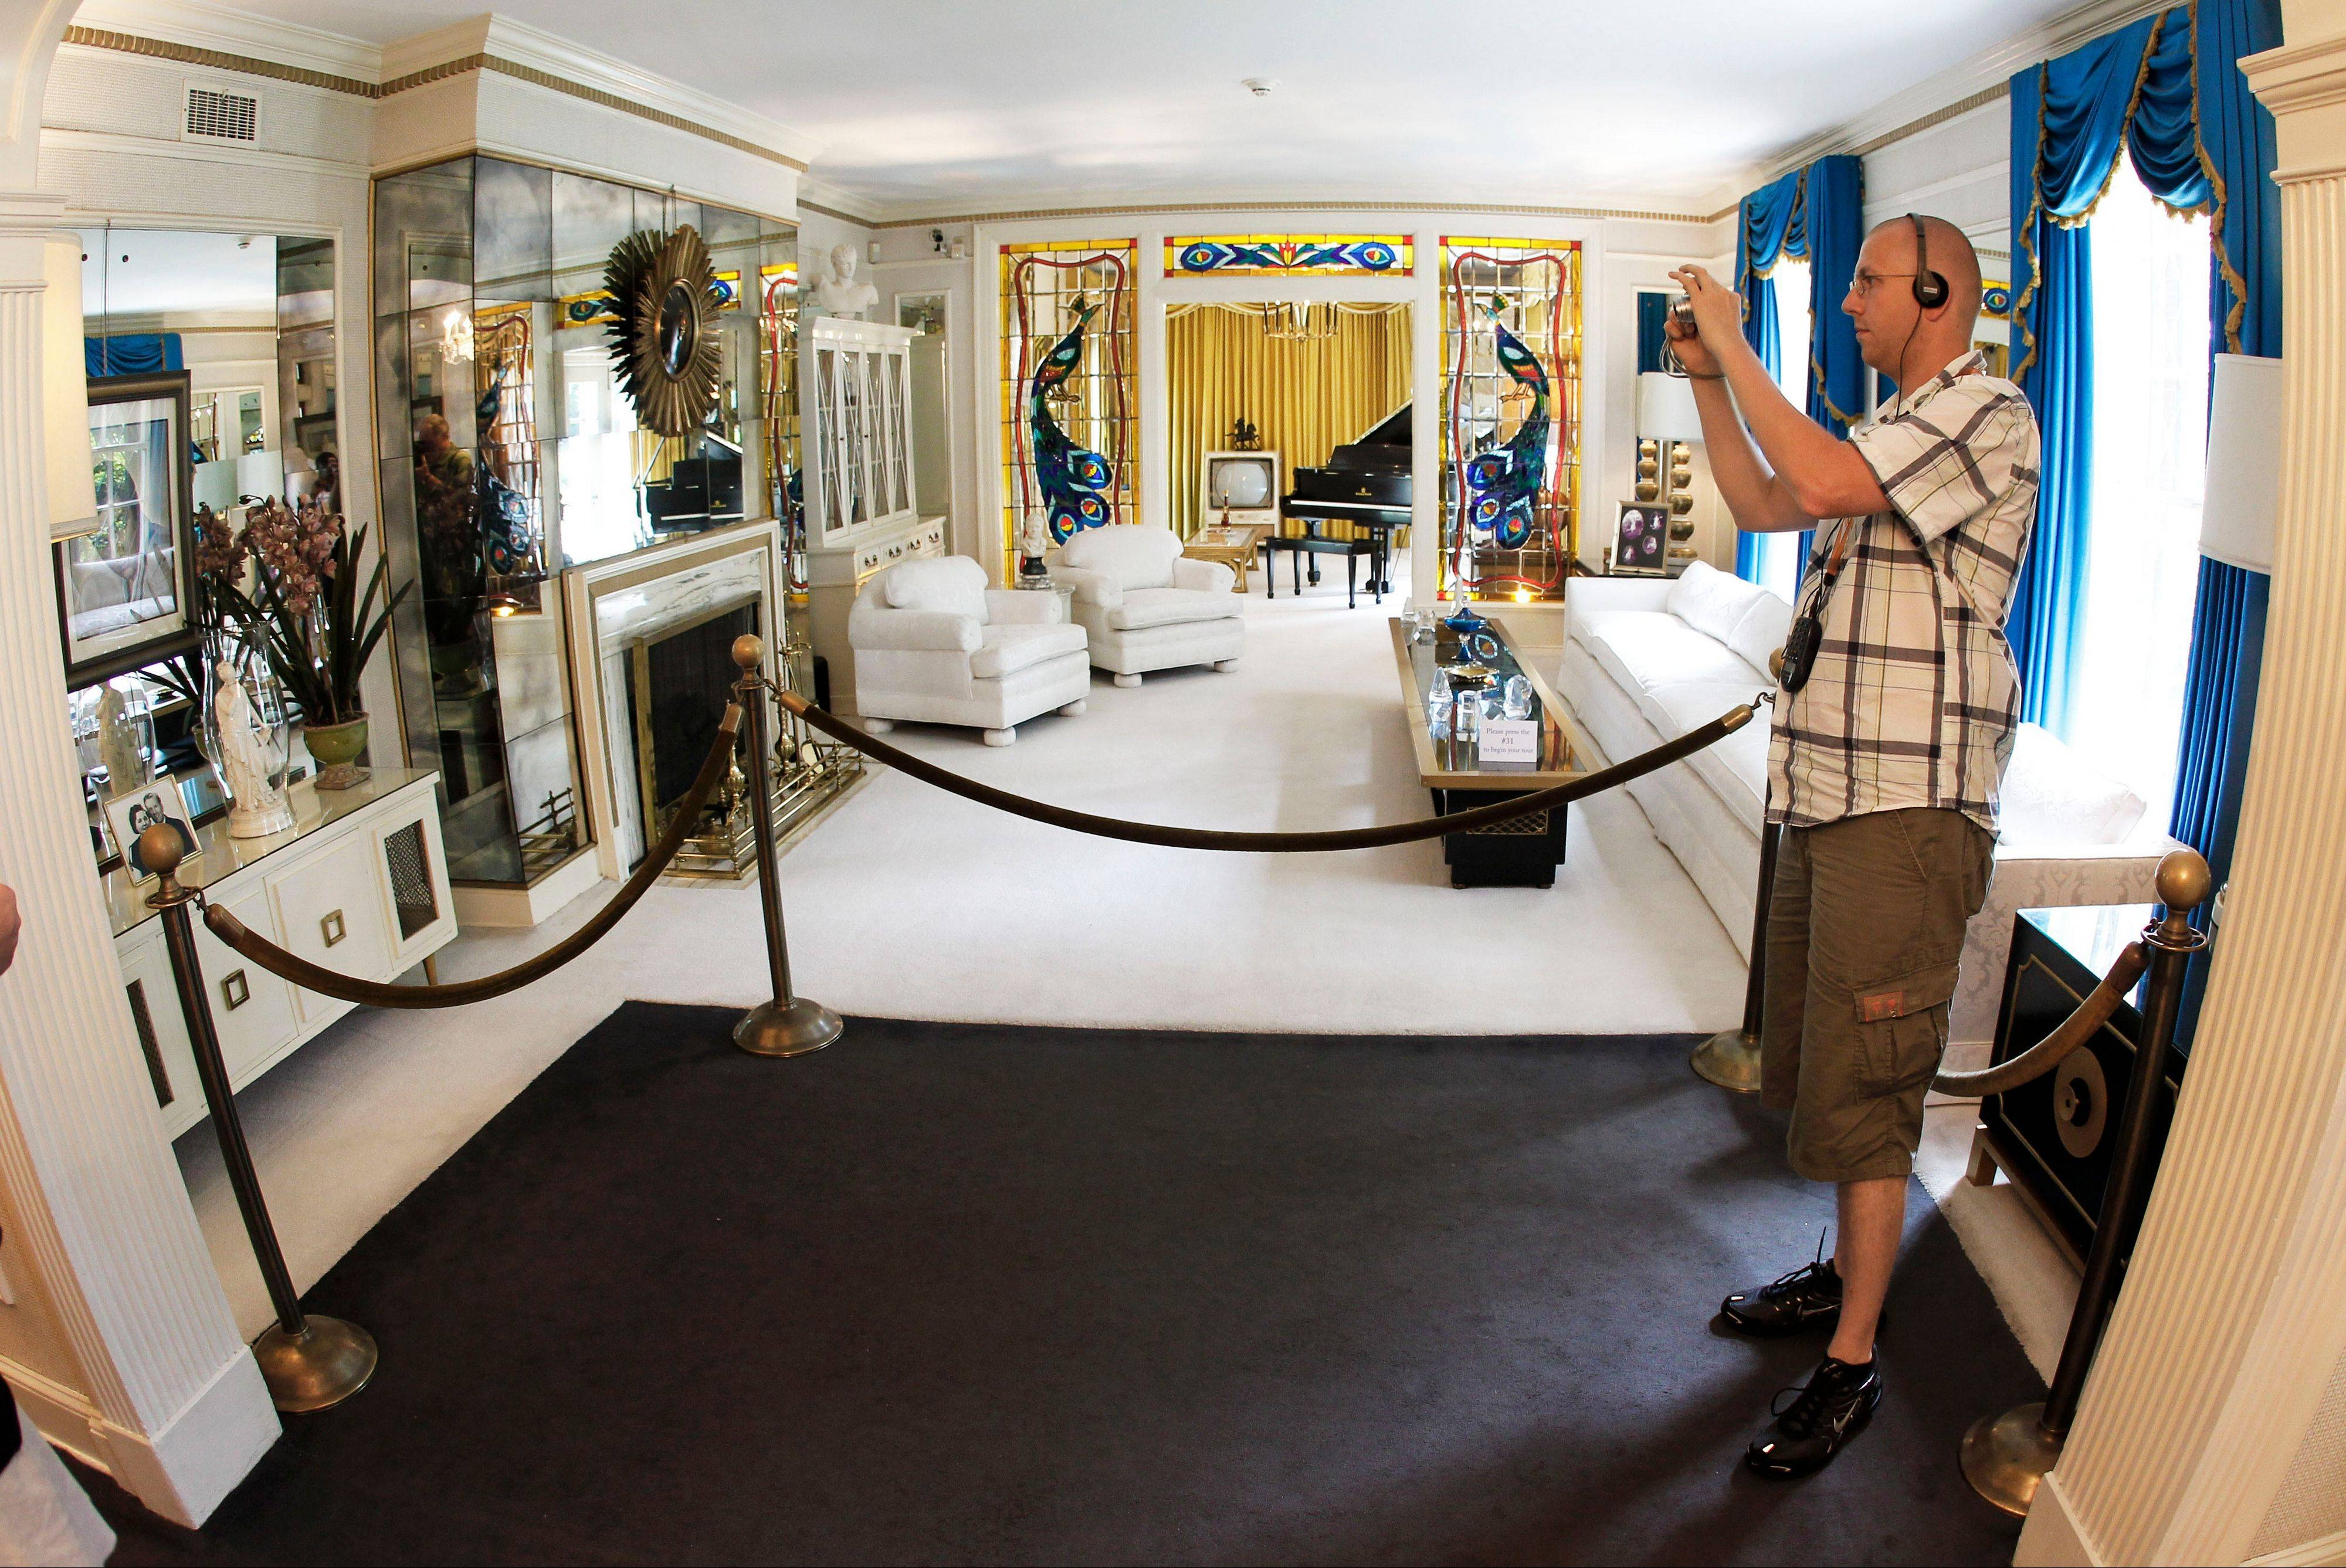 A tourist views the living room at Graceland.